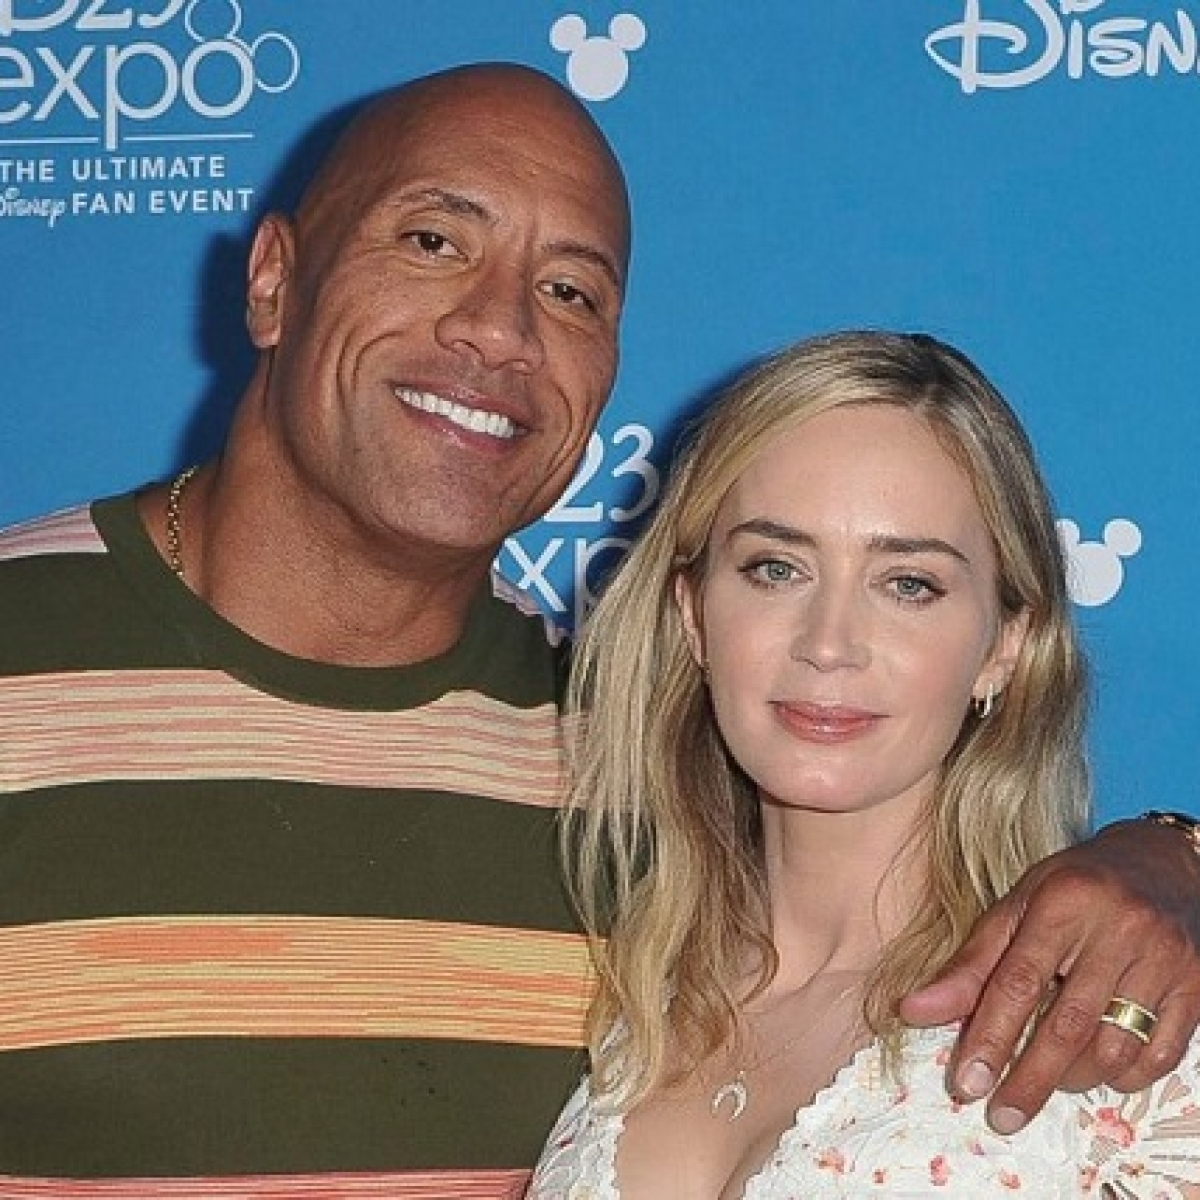 Emily Blunt, Dwayne Johnson to star in superhero film 'Ball and Chain'